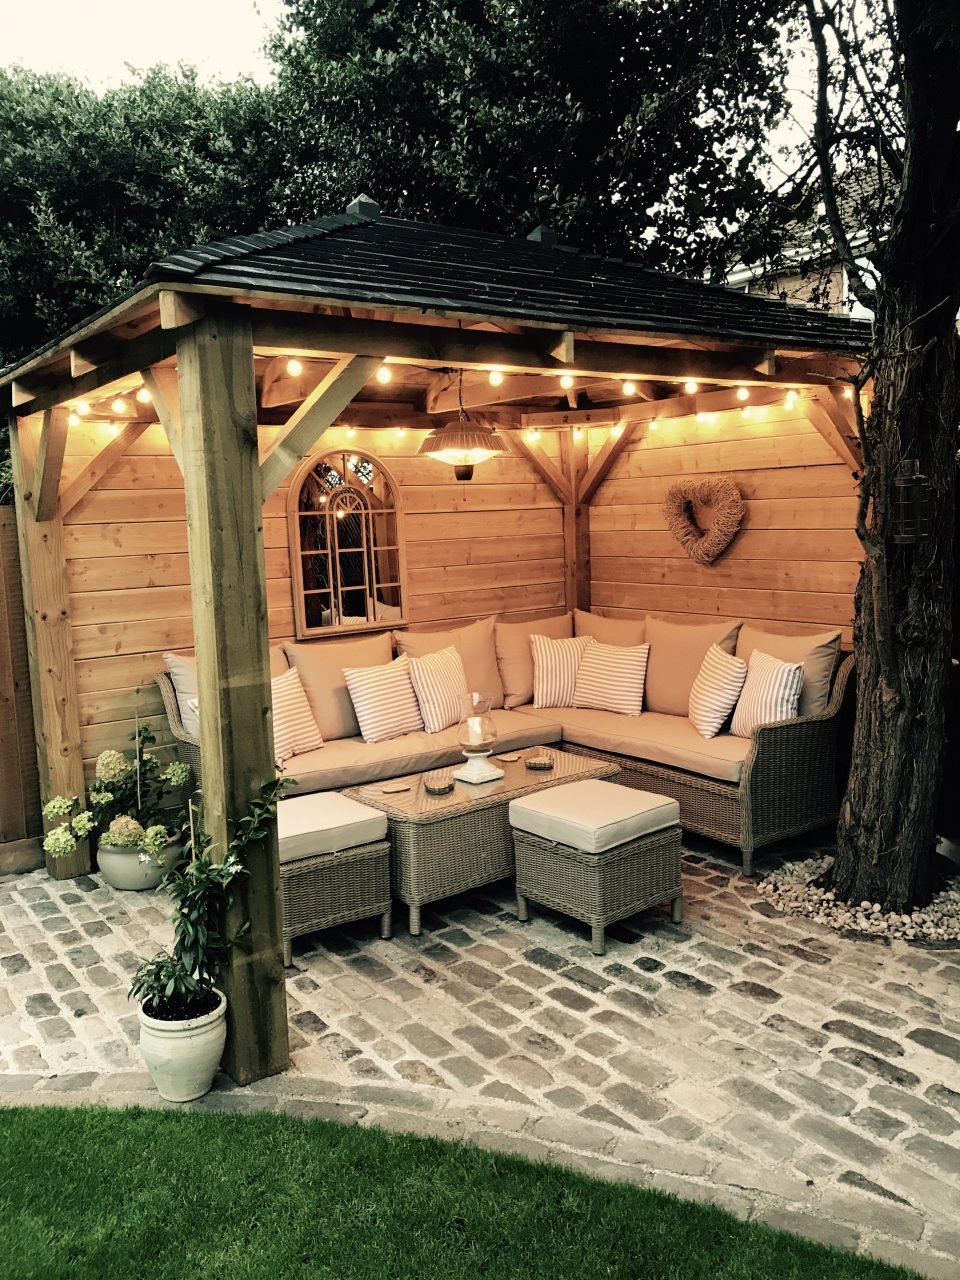 Homemade Wooden Gazebo Tuin Patio Deck Designs Backyard